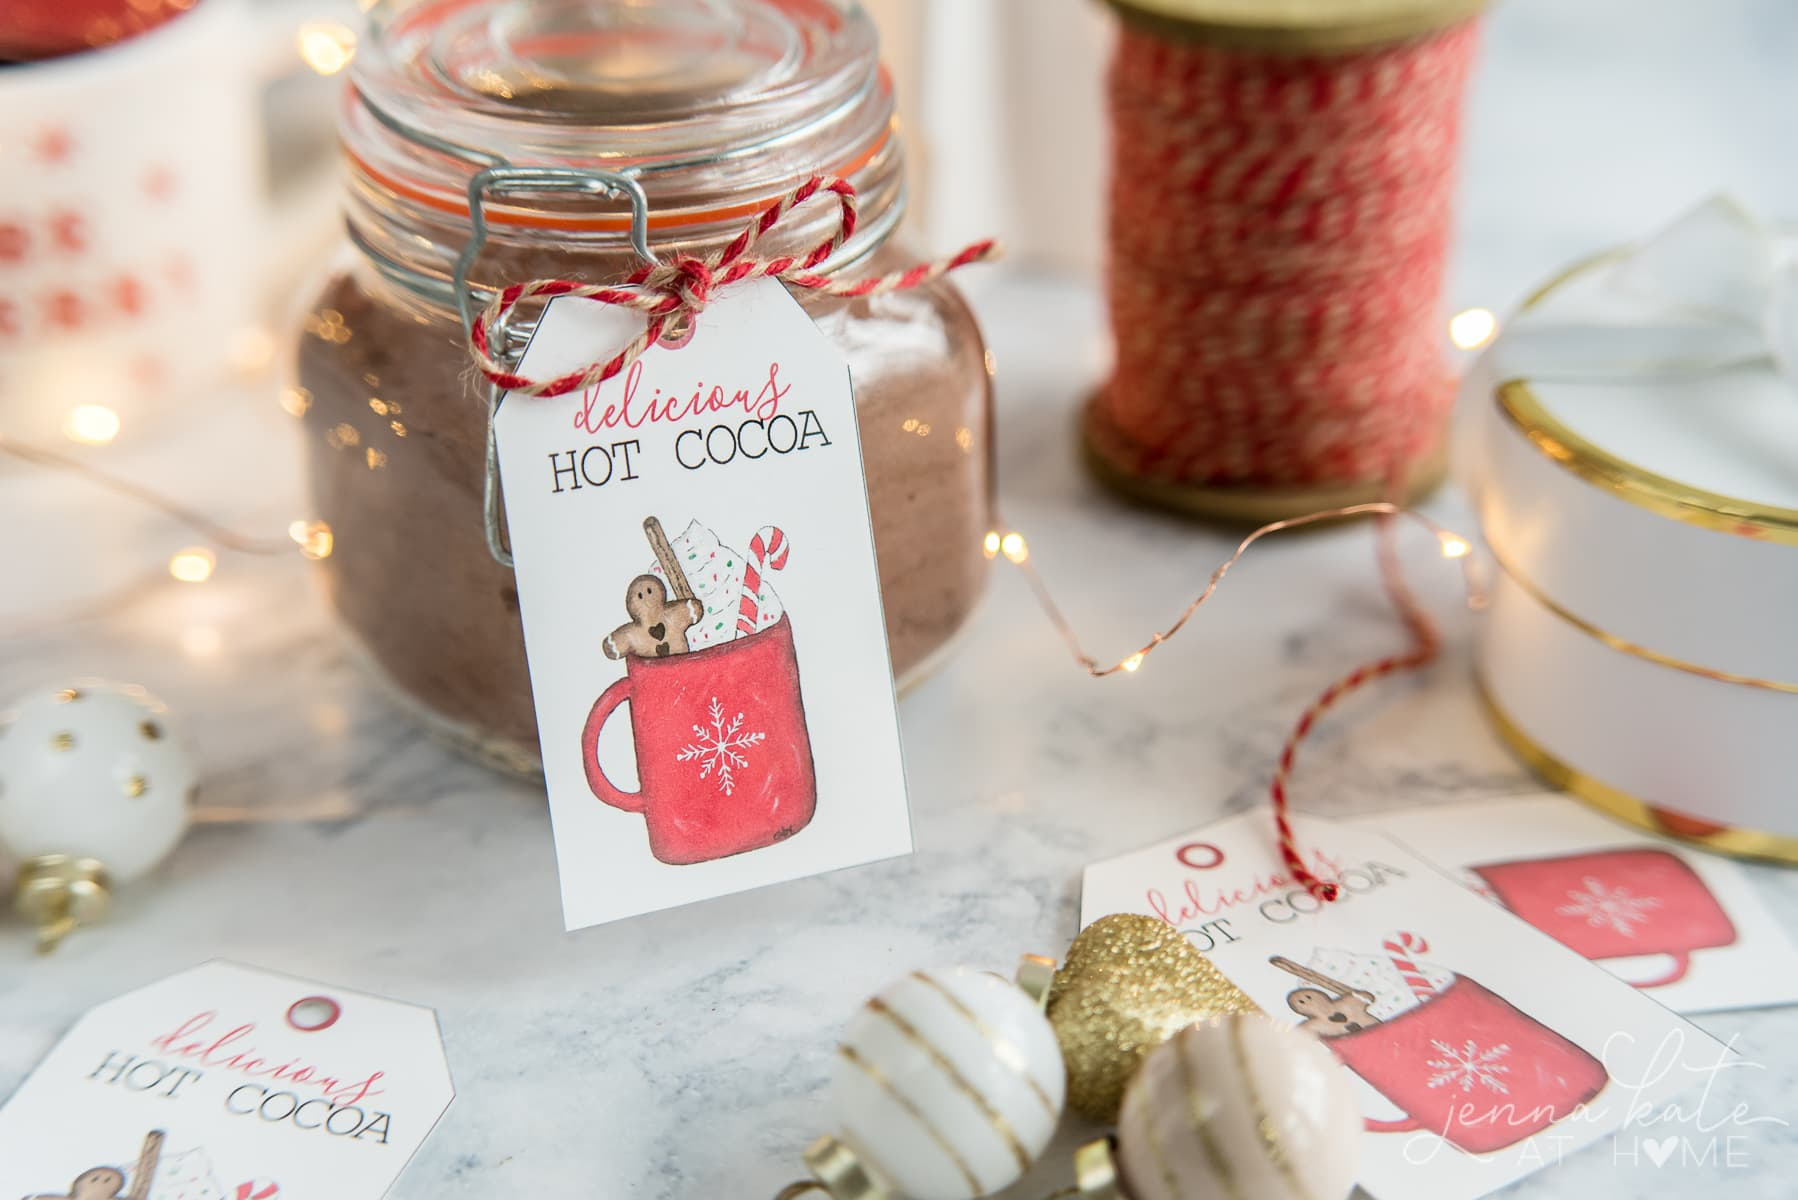 Making a basic glass jar look festive with a cute hot chocolate gift tag to download for free